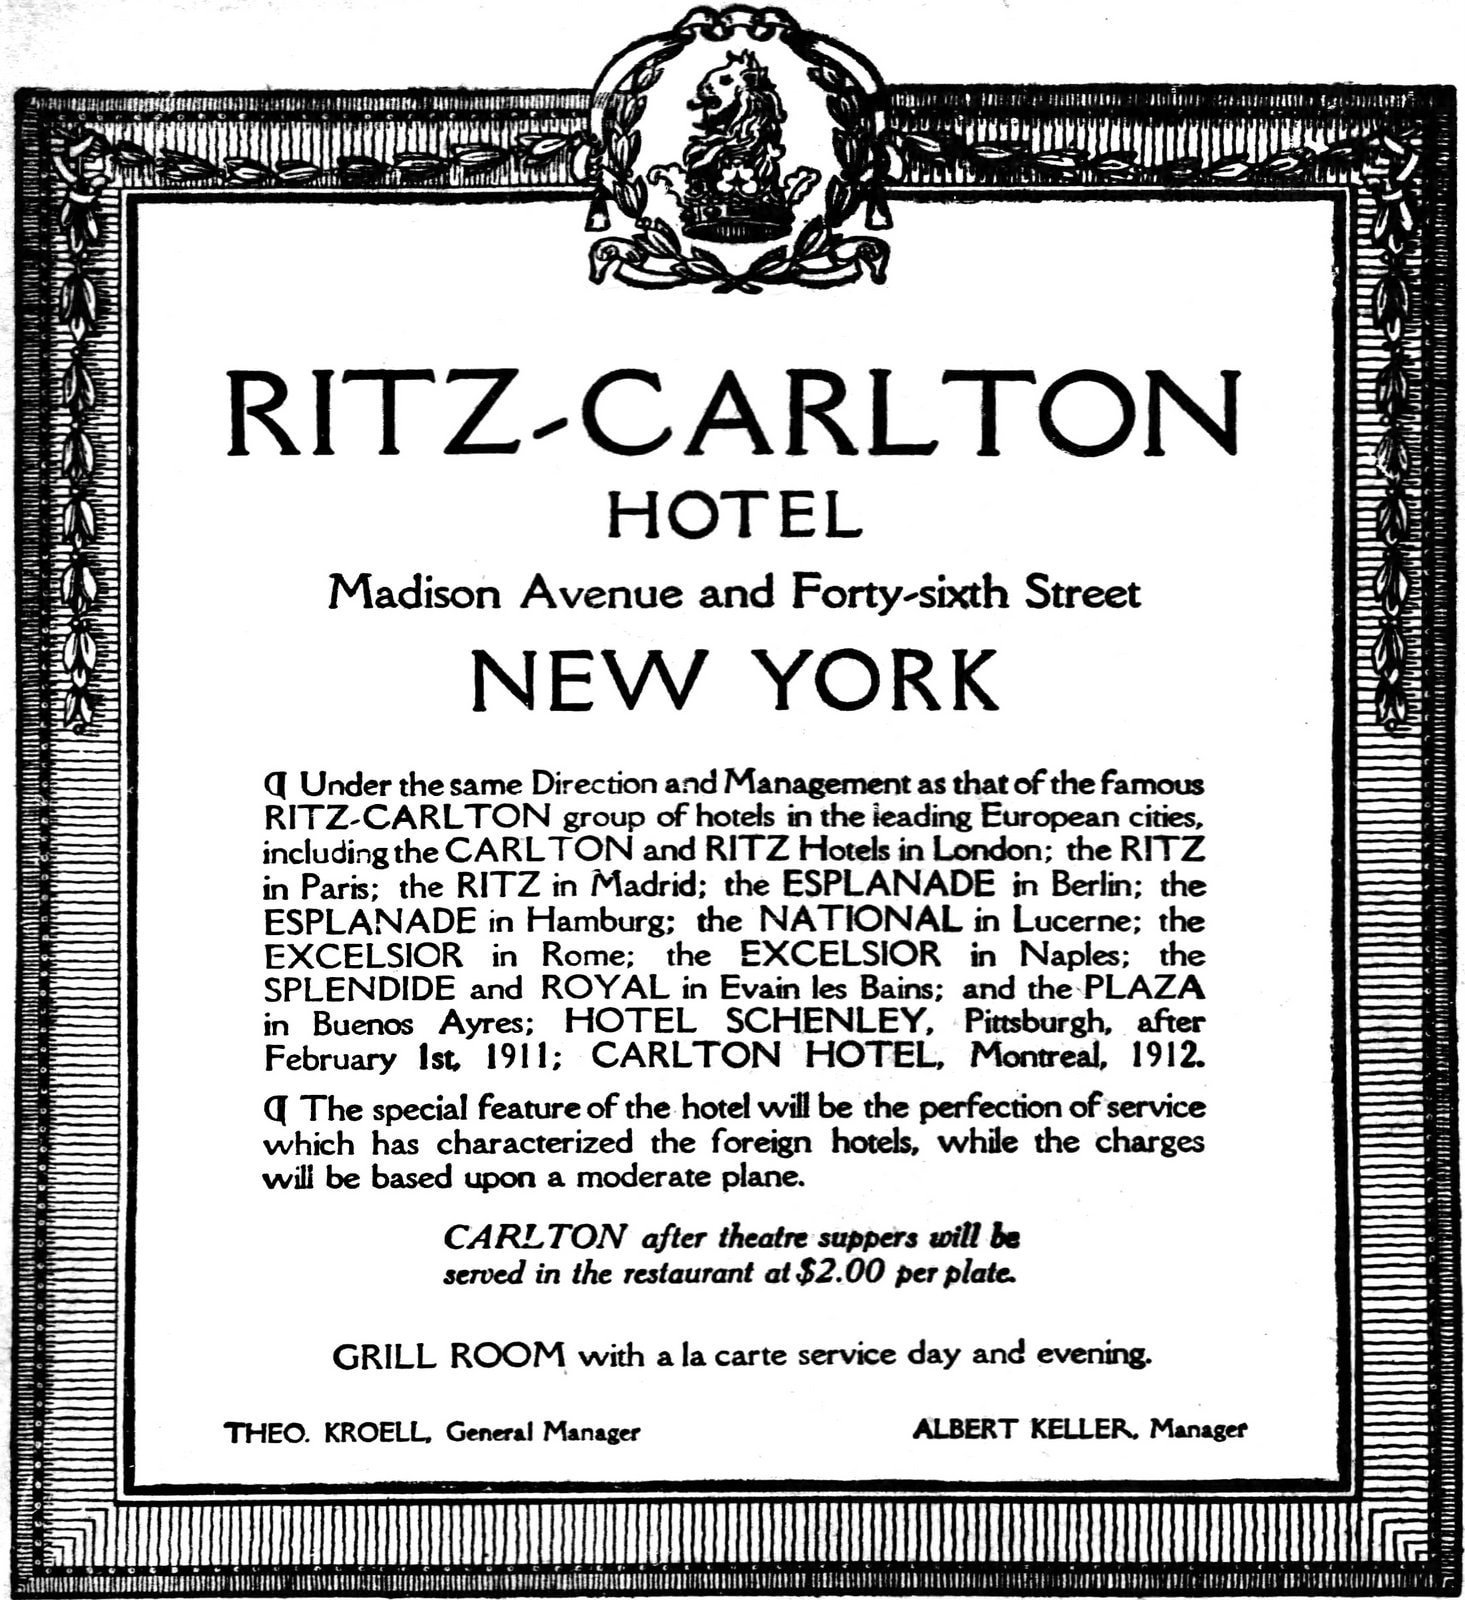 Announcement about opening of the Ritz-Carlton Hotel - January 1, 1911